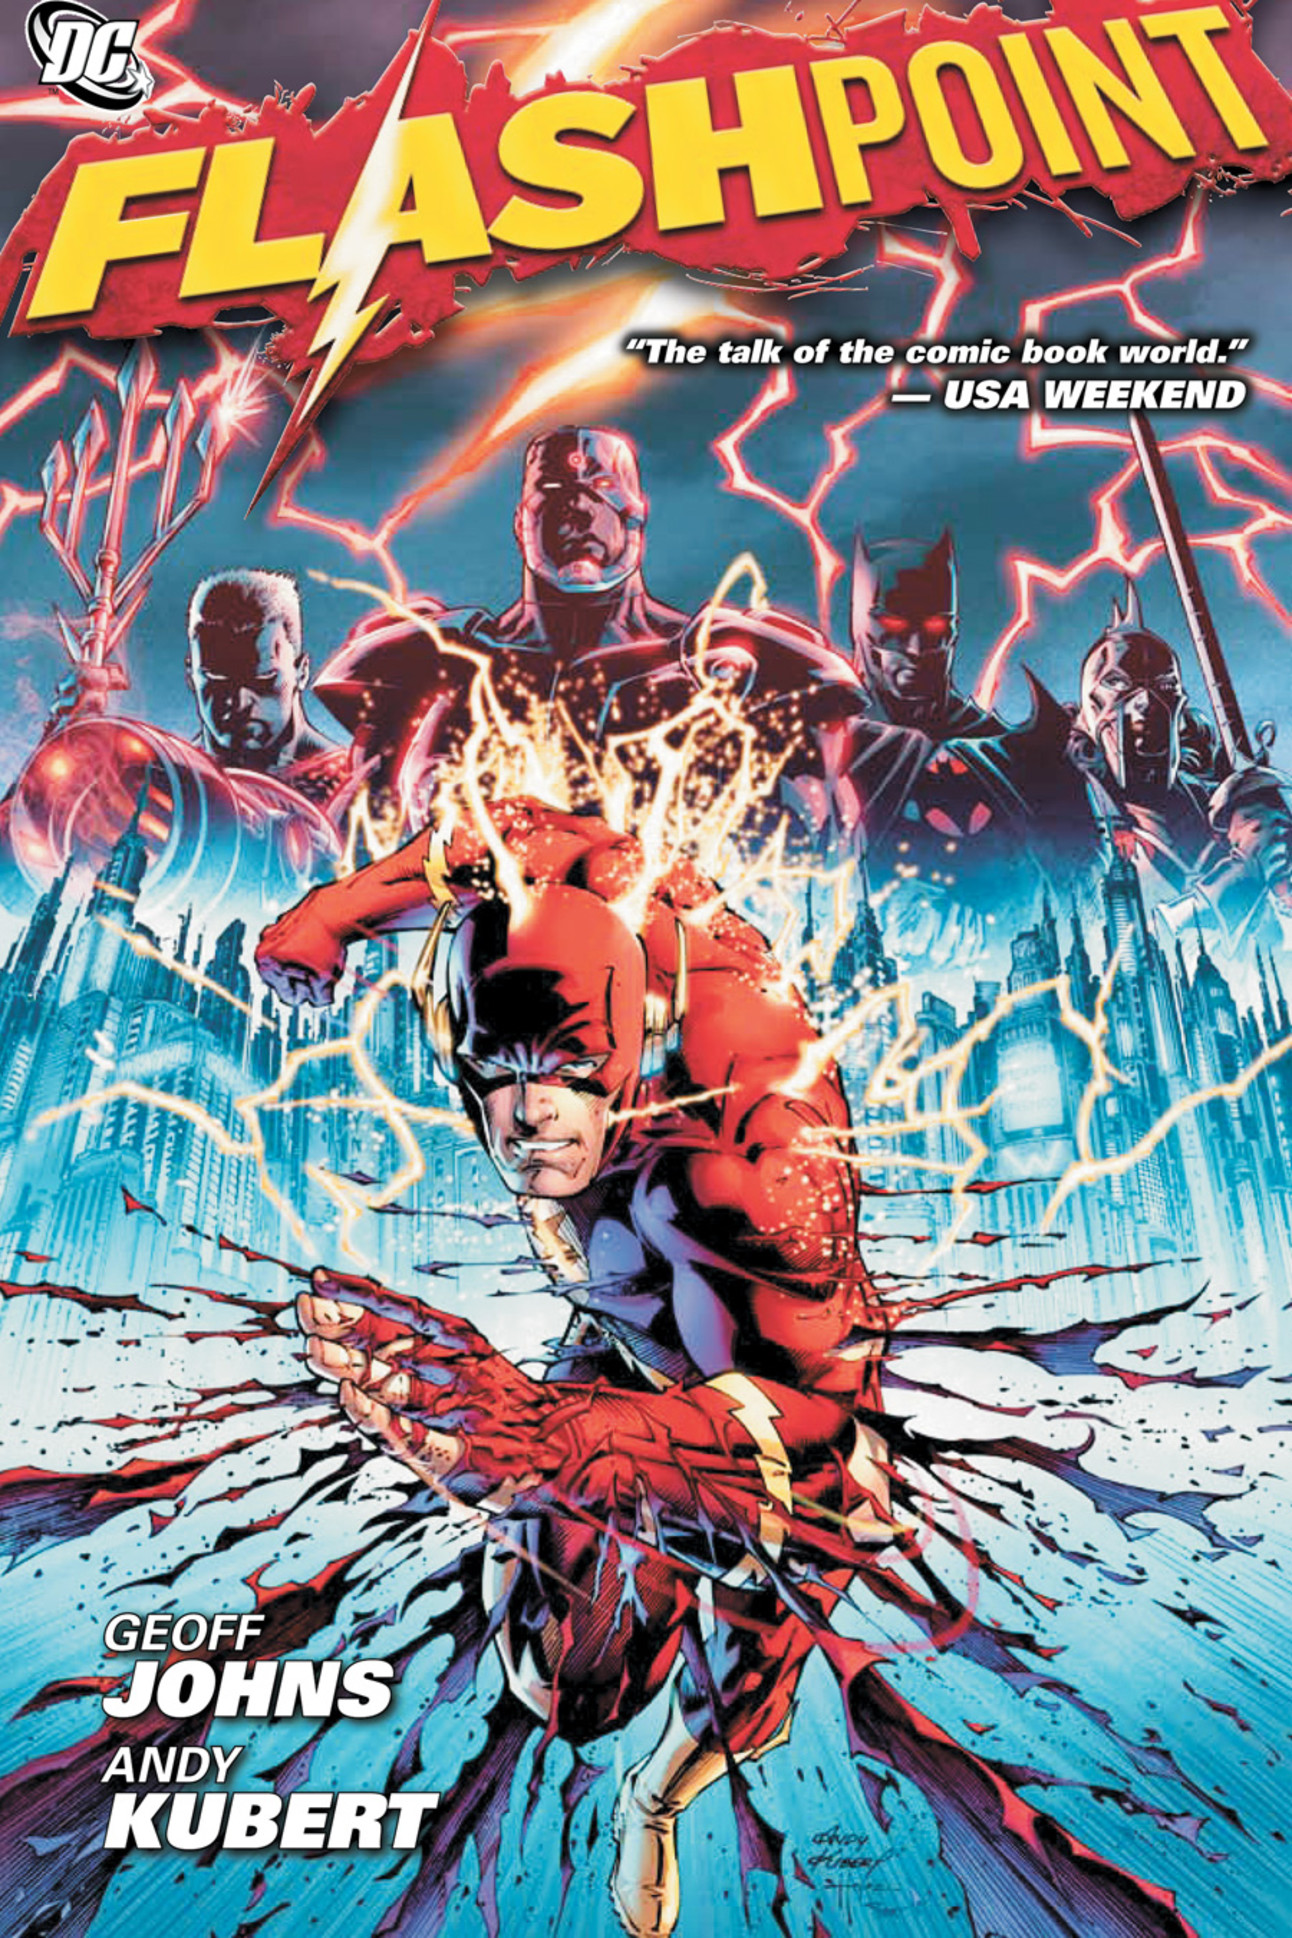 Flashpoint-cover.jpg